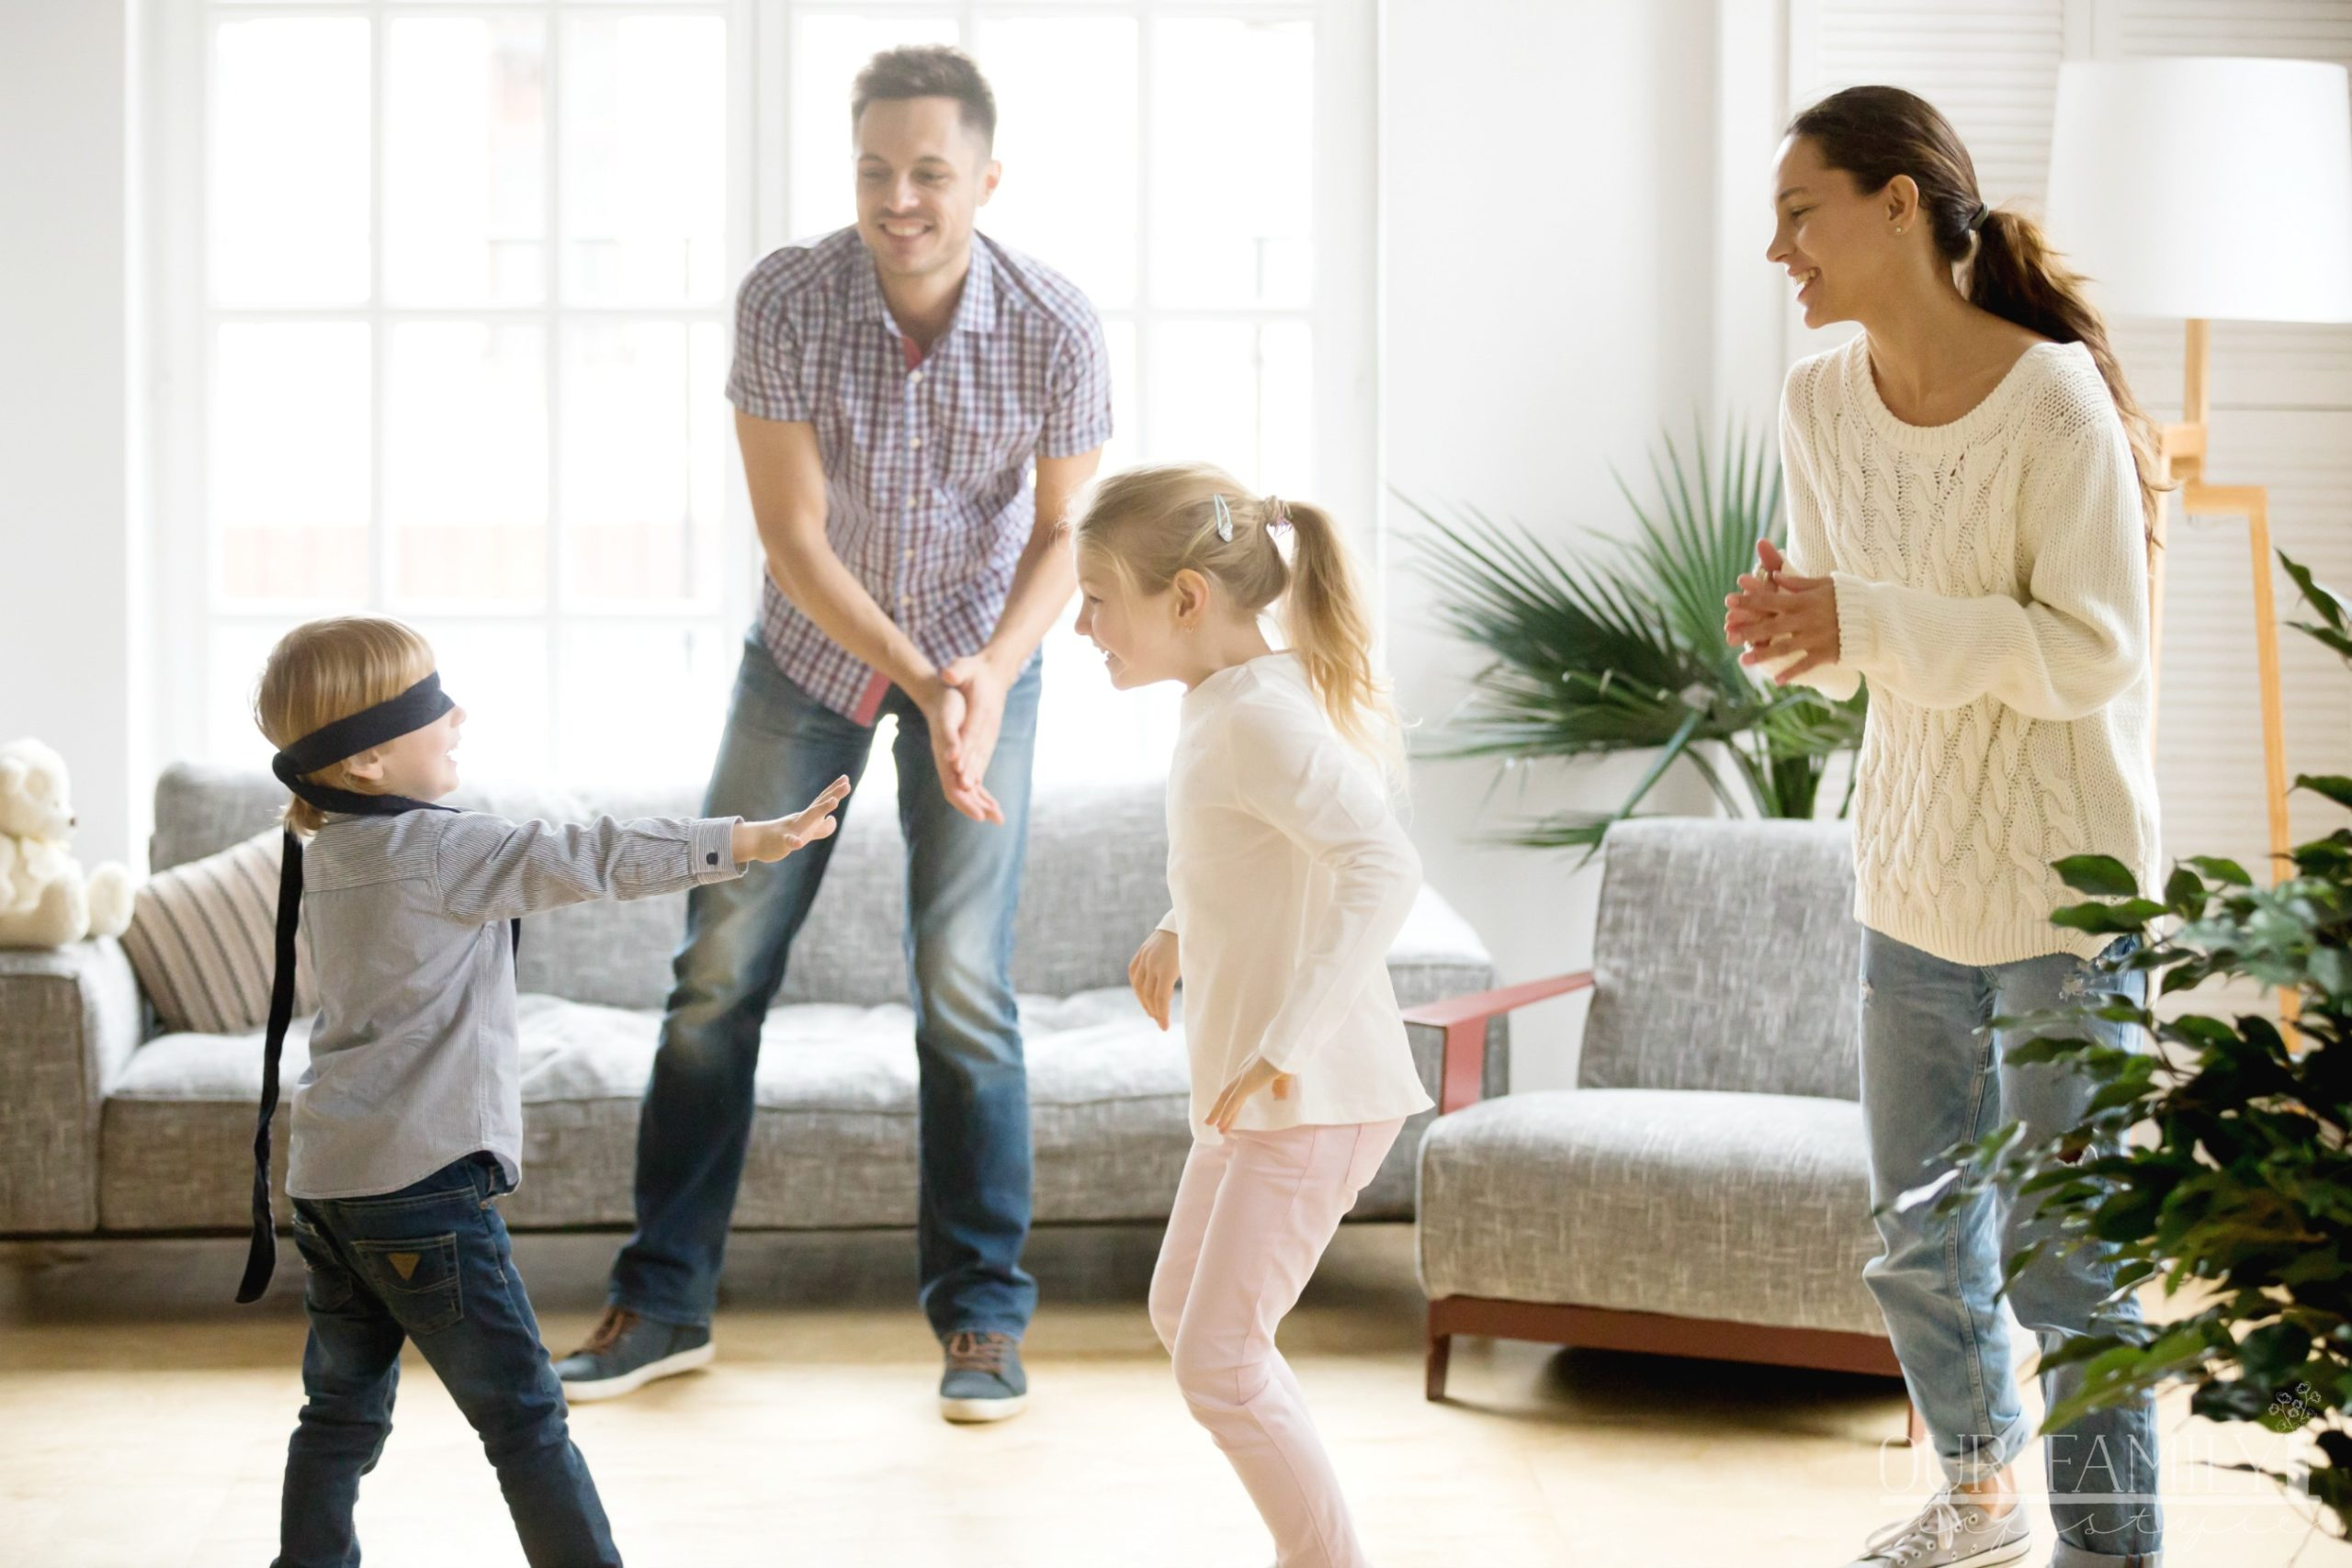 Fun Things To Do At Home with Kids: 89+ Family Activities for All Ages